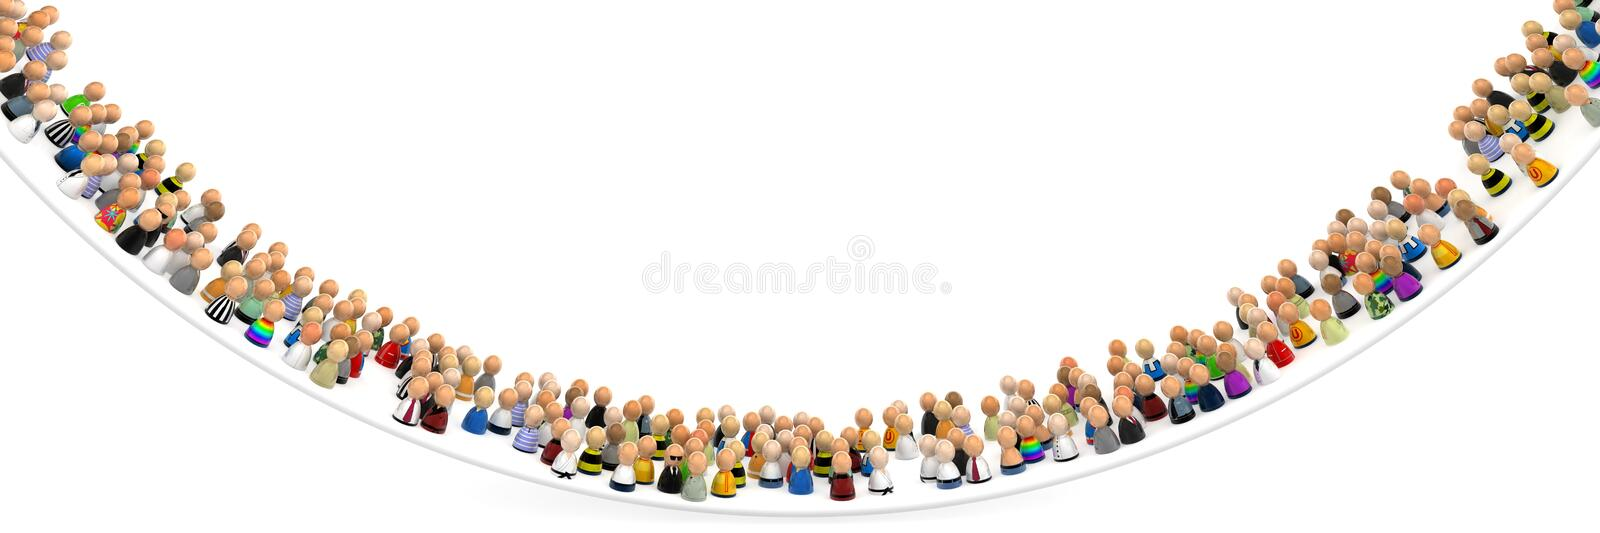 Download Crowd Bend stock illustration. Image of smile, difference - 10983535